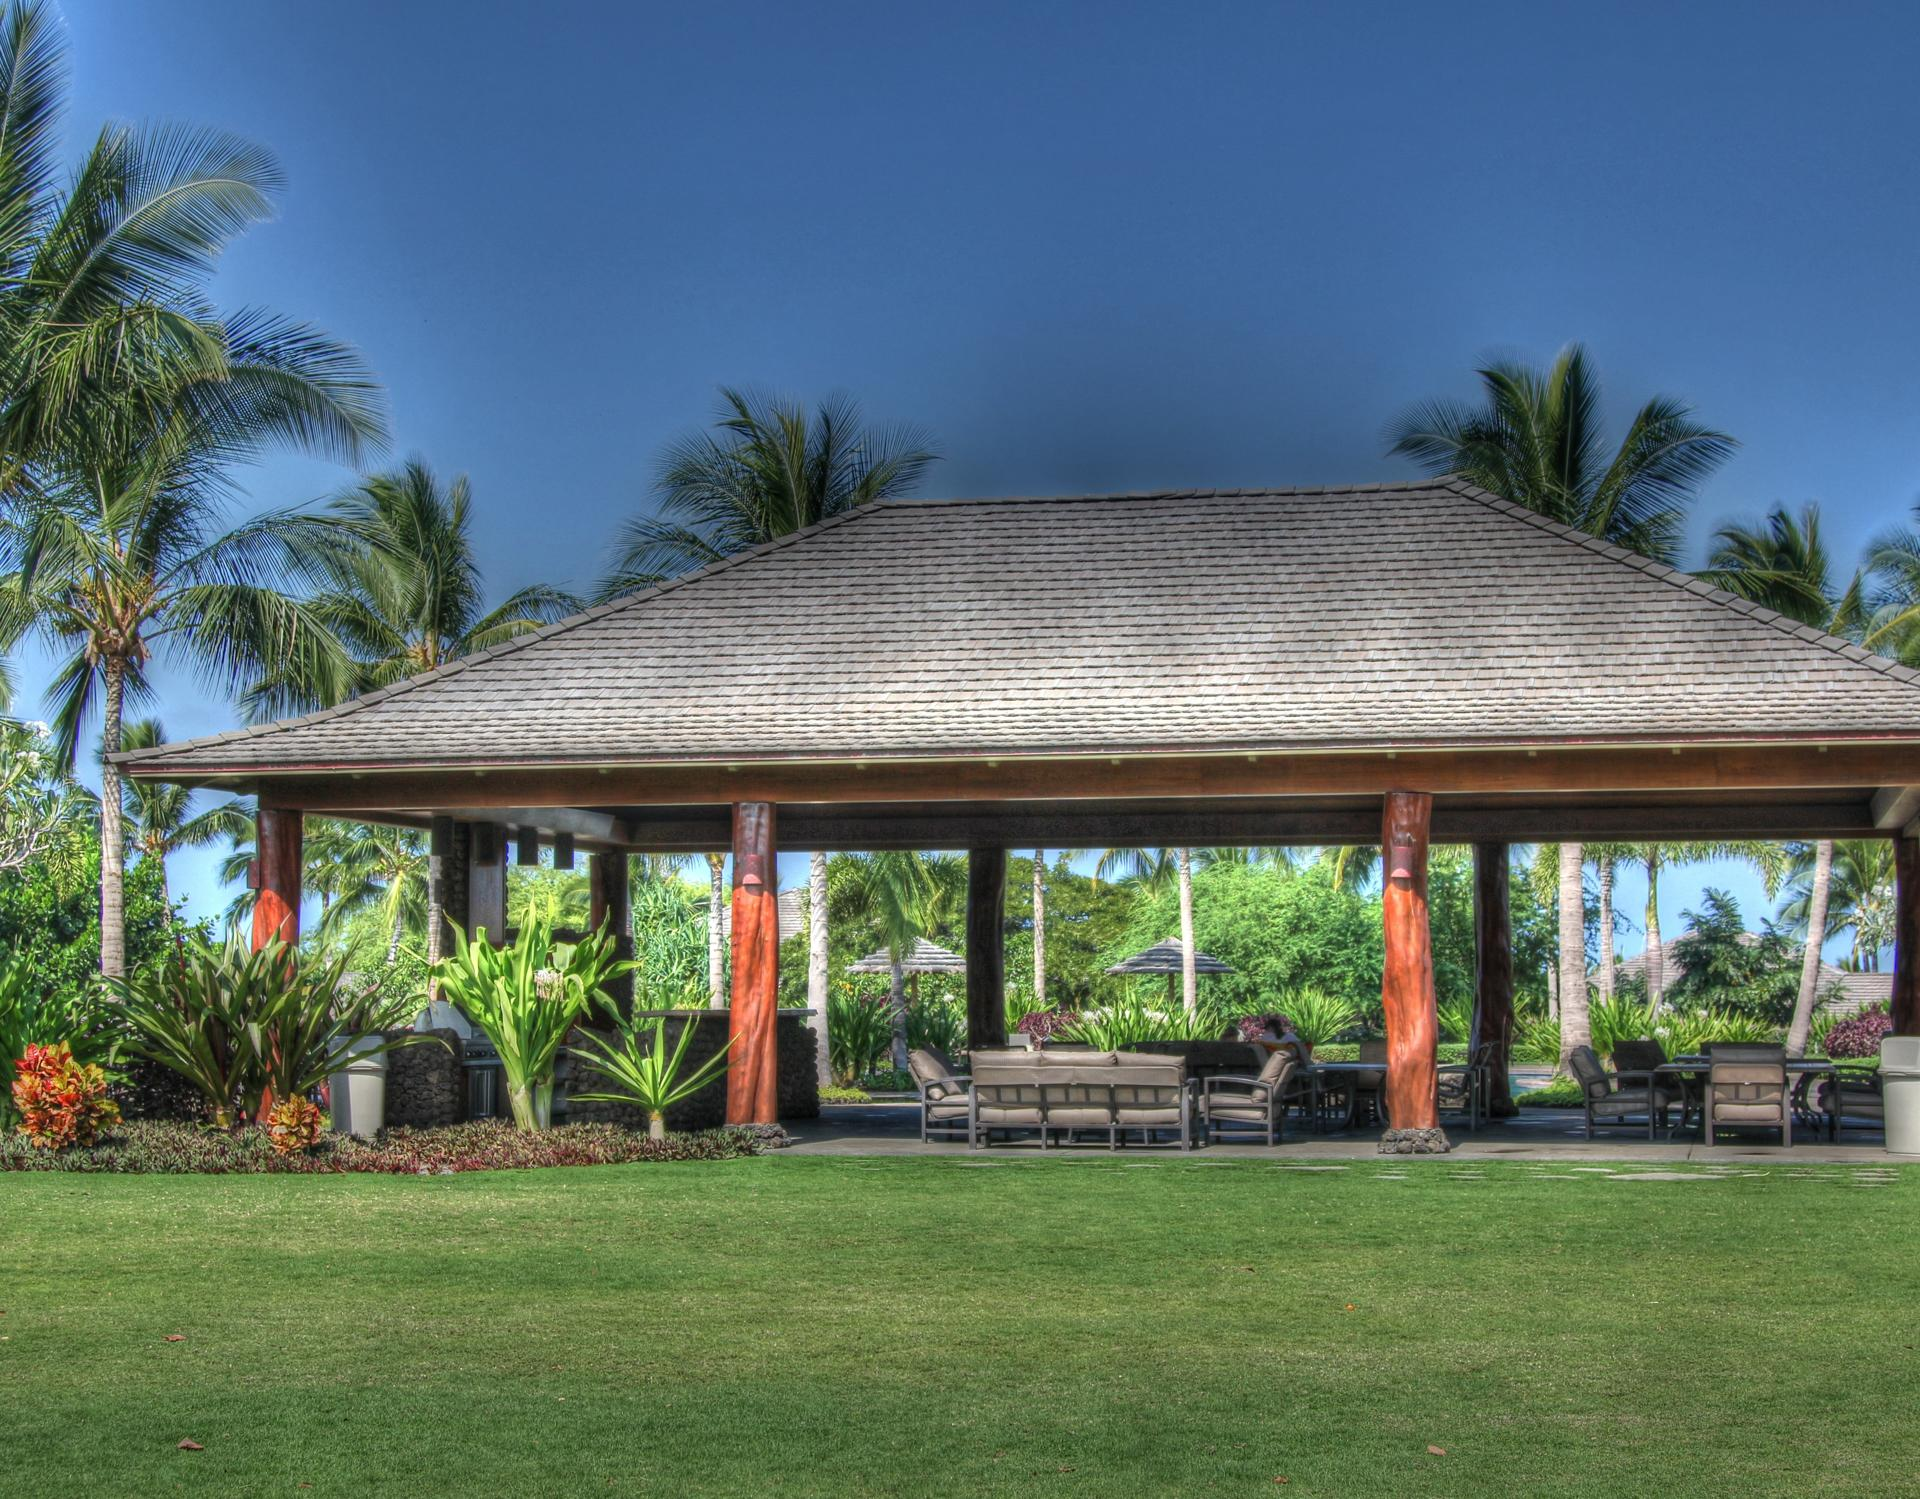 Tranquil 2BR Kulalani Villa with Private Beach Club